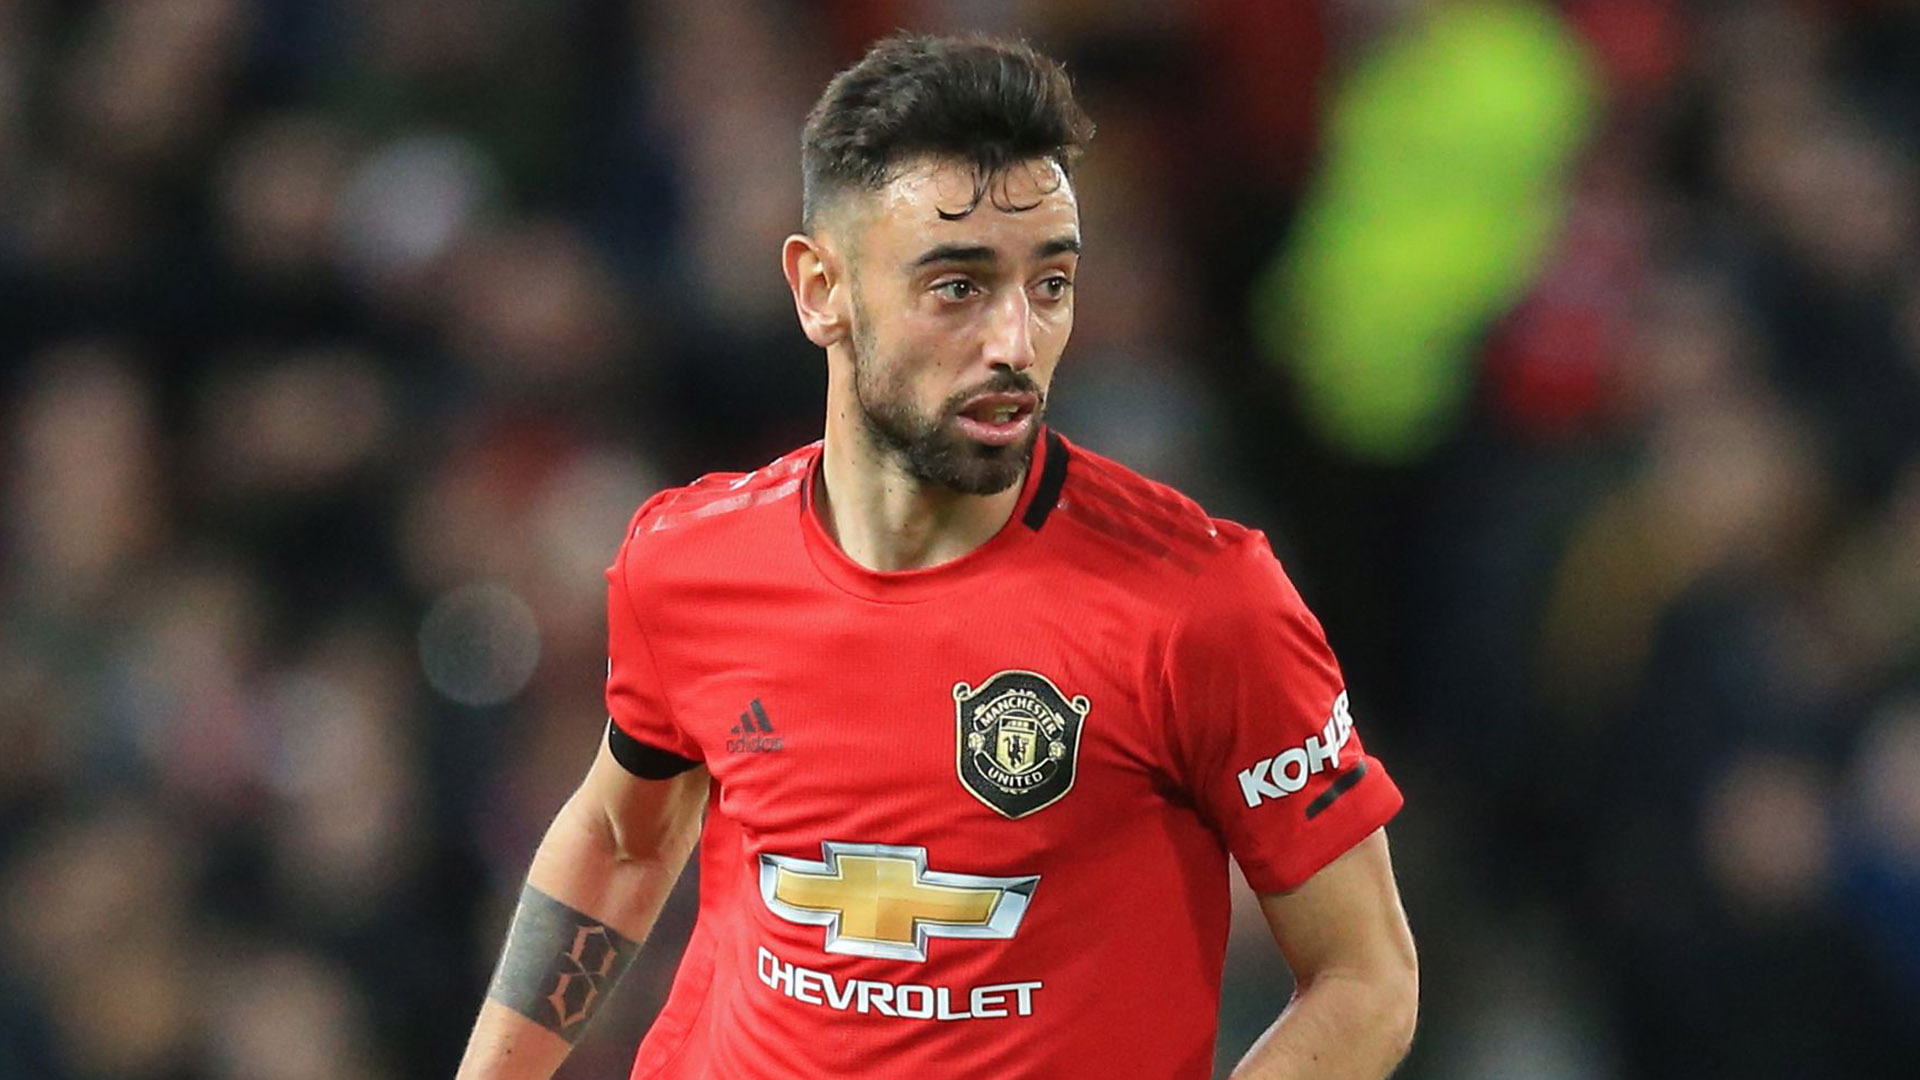 Carvalhal don samma Manchester United warning as per Fernandes